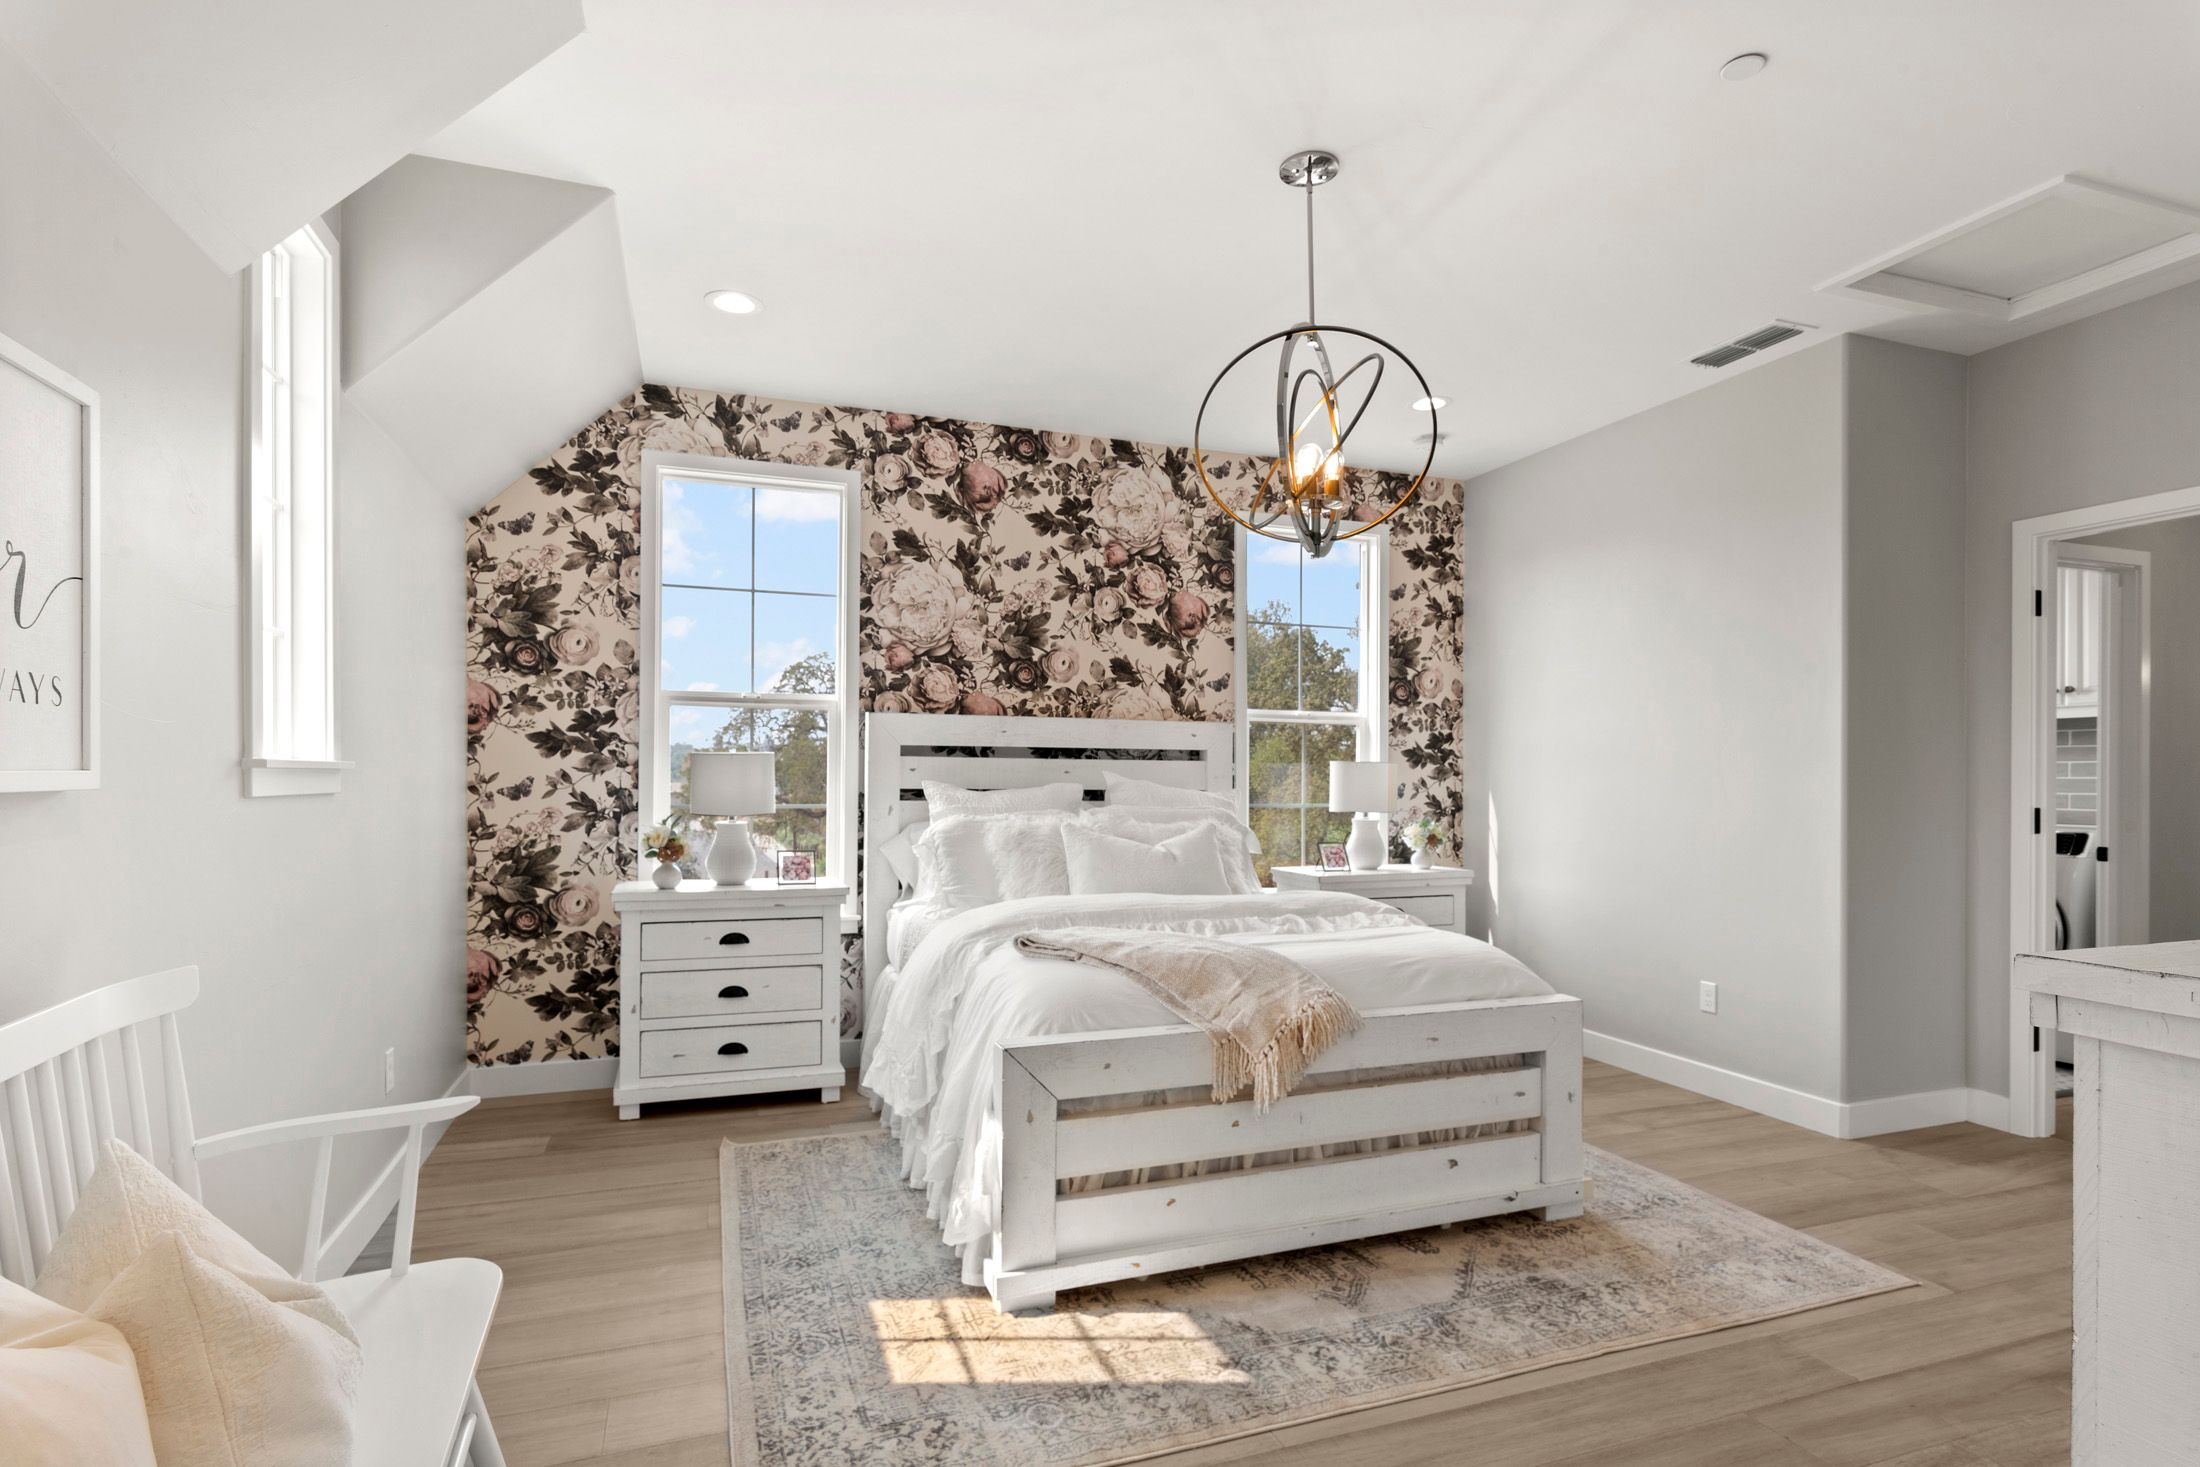 Bedroom featured in the Residence 5 By BlackPine Communites in Sacramento, CA